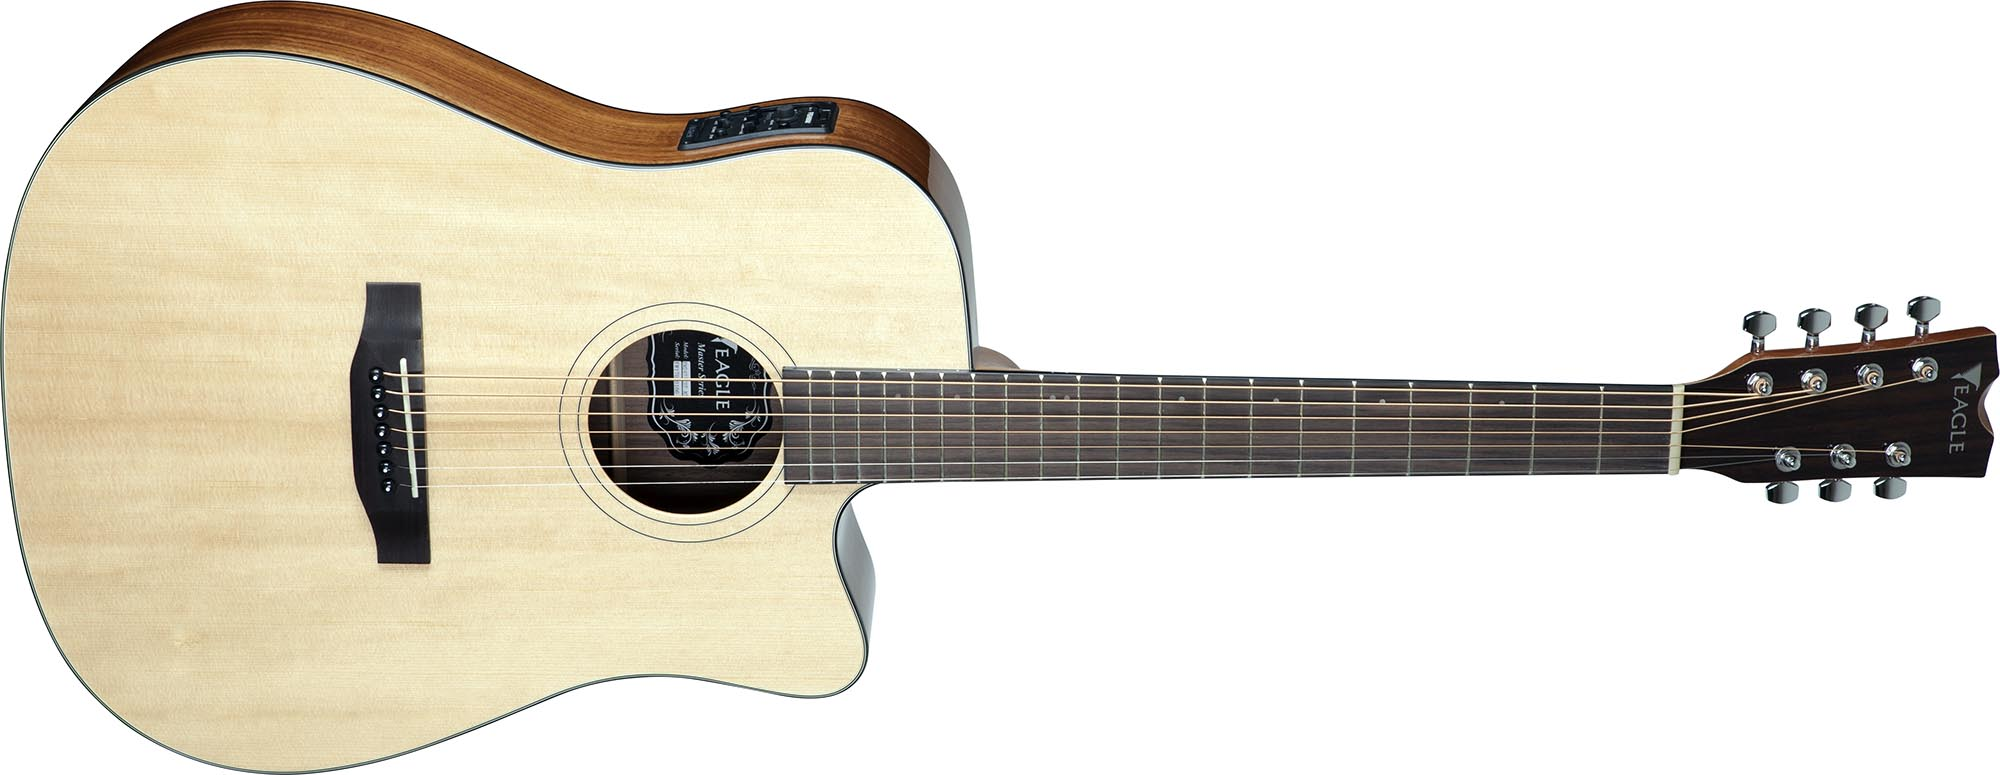 emd477ce7 violao 7 cordas folk dreadnought tampo solido eagle emd477ce7 nt natural visao frontal